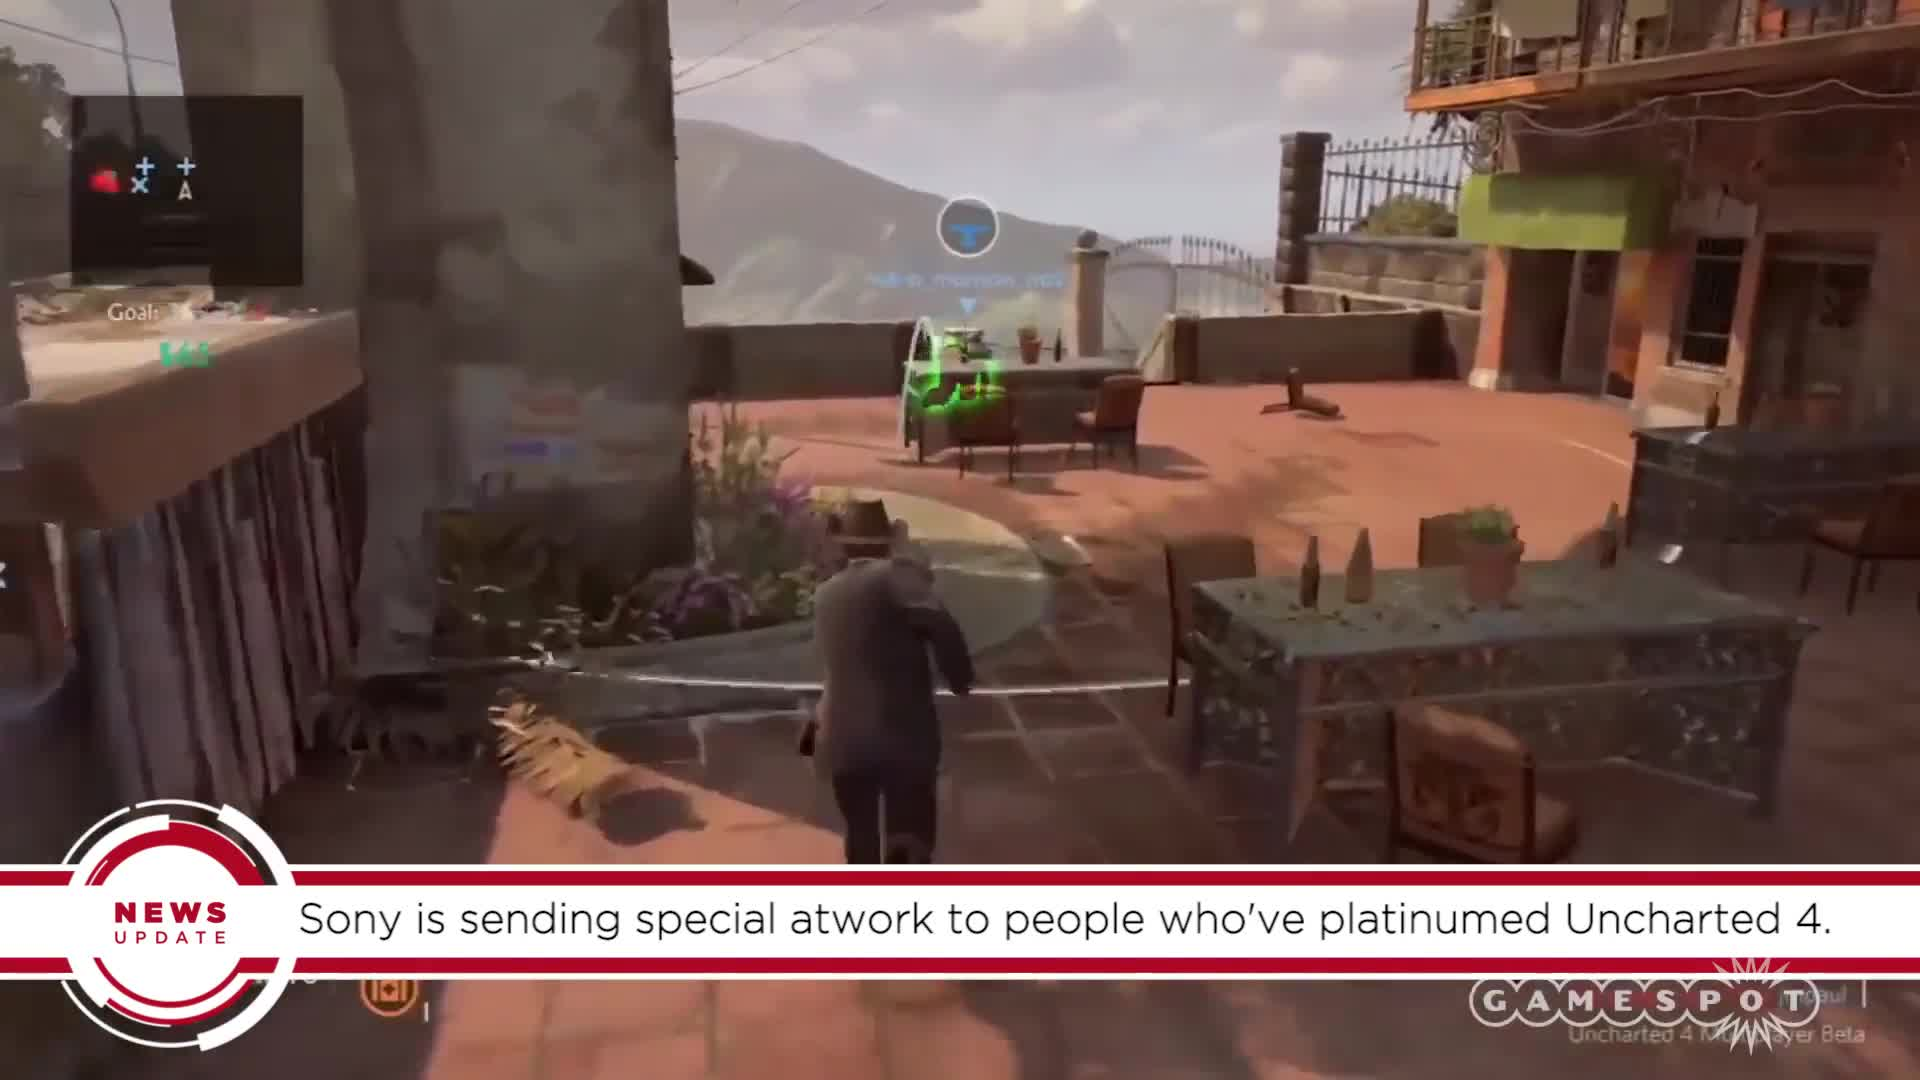 GS News Update: Here's Your Prize for Getting Uncharted 4's Platinum Trophy